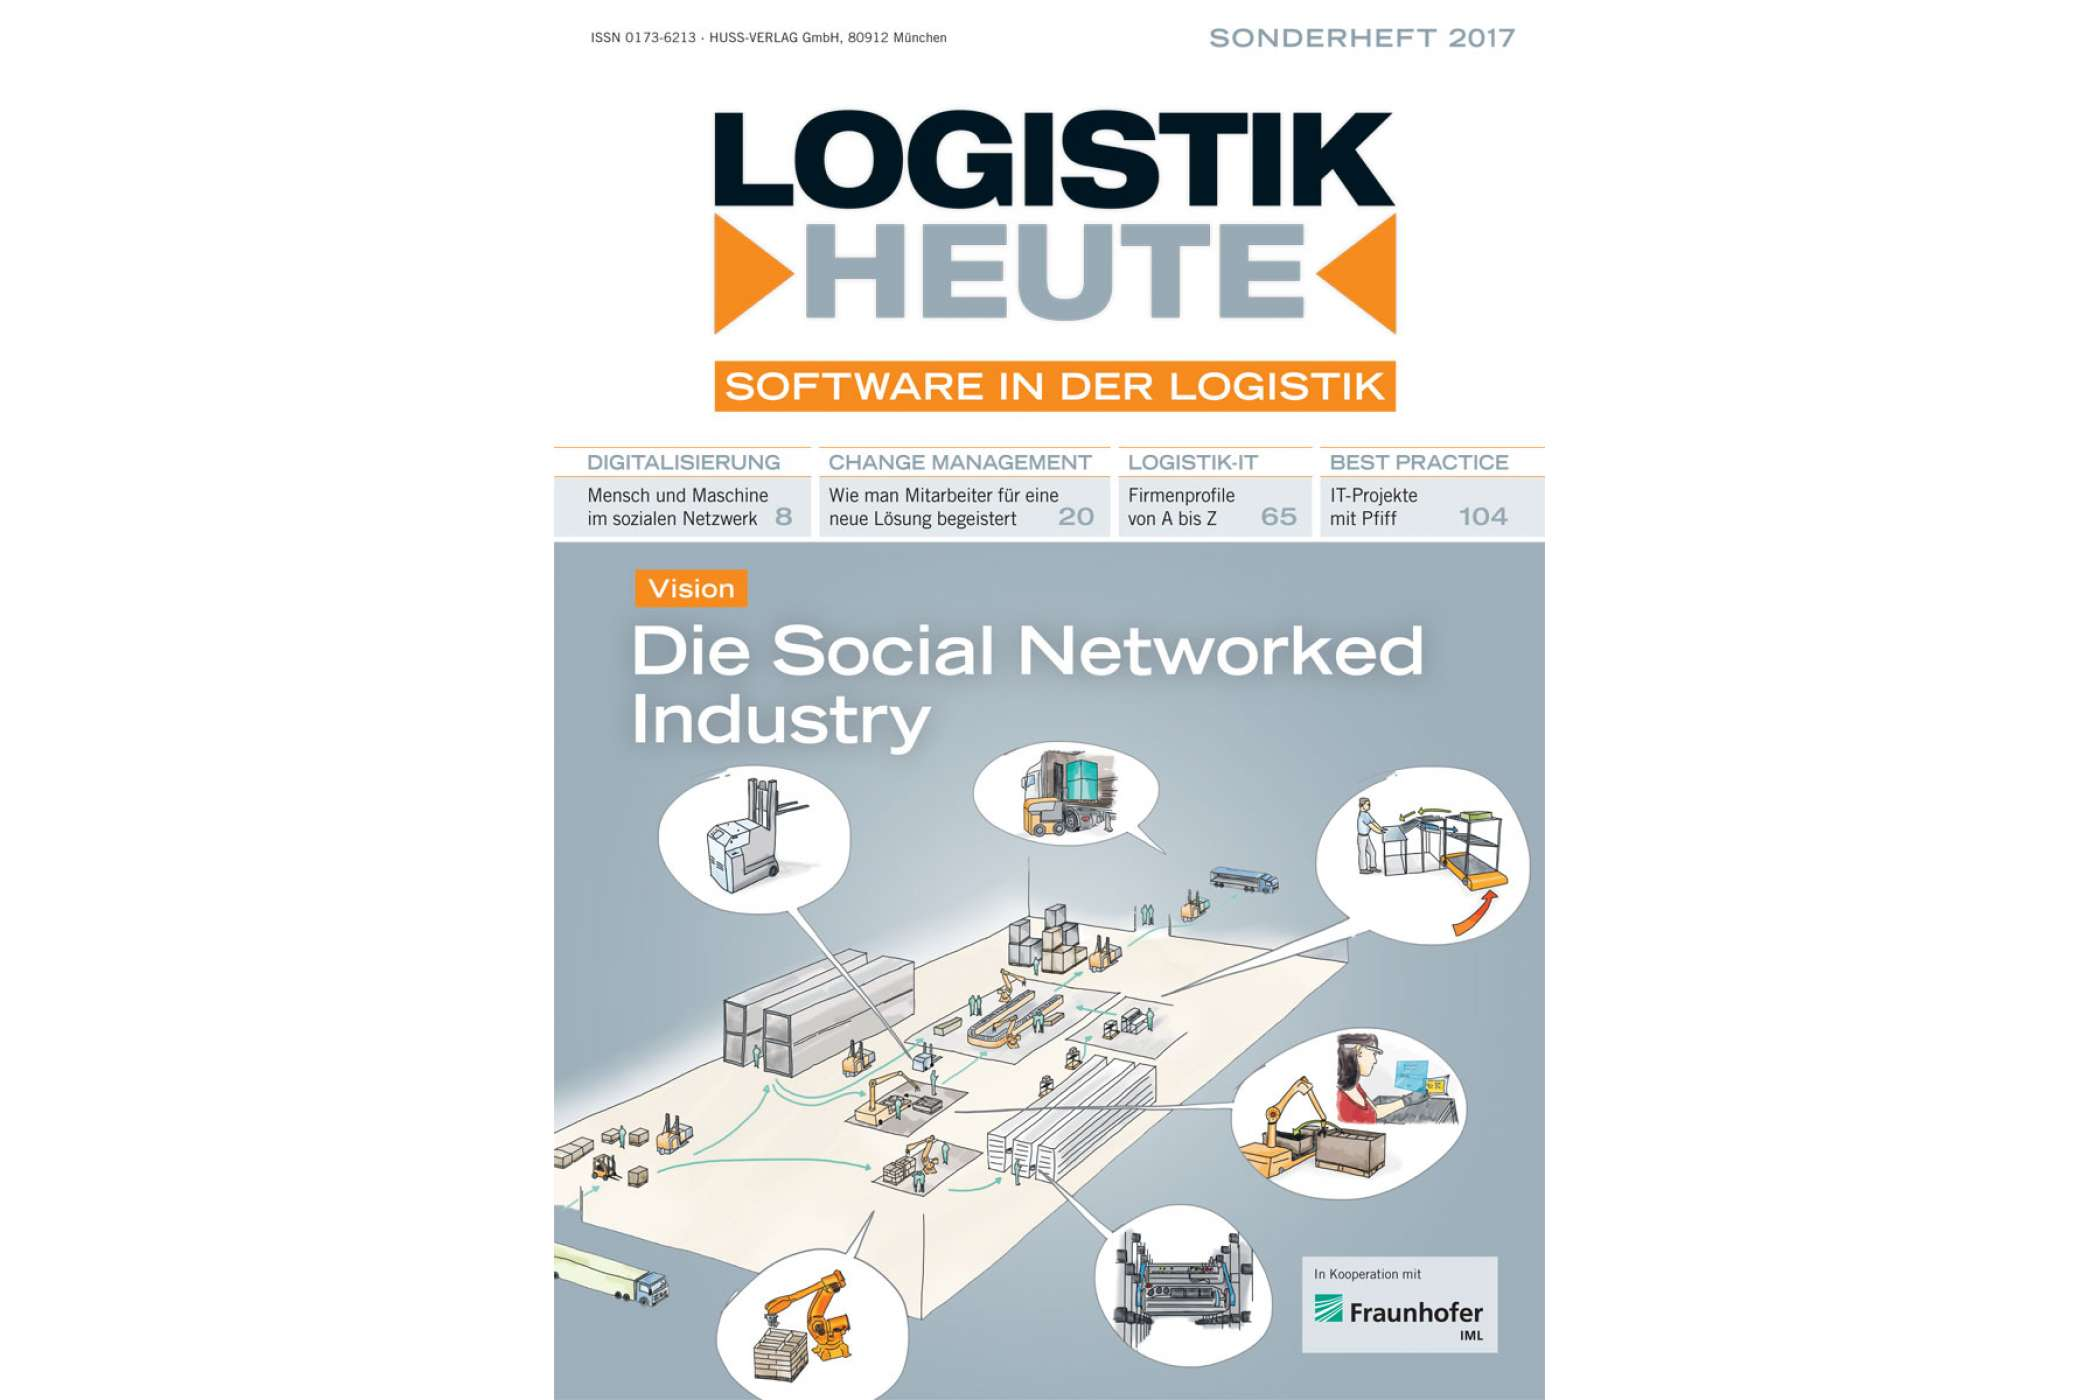 Sonderheft Software in der Logistik 2017